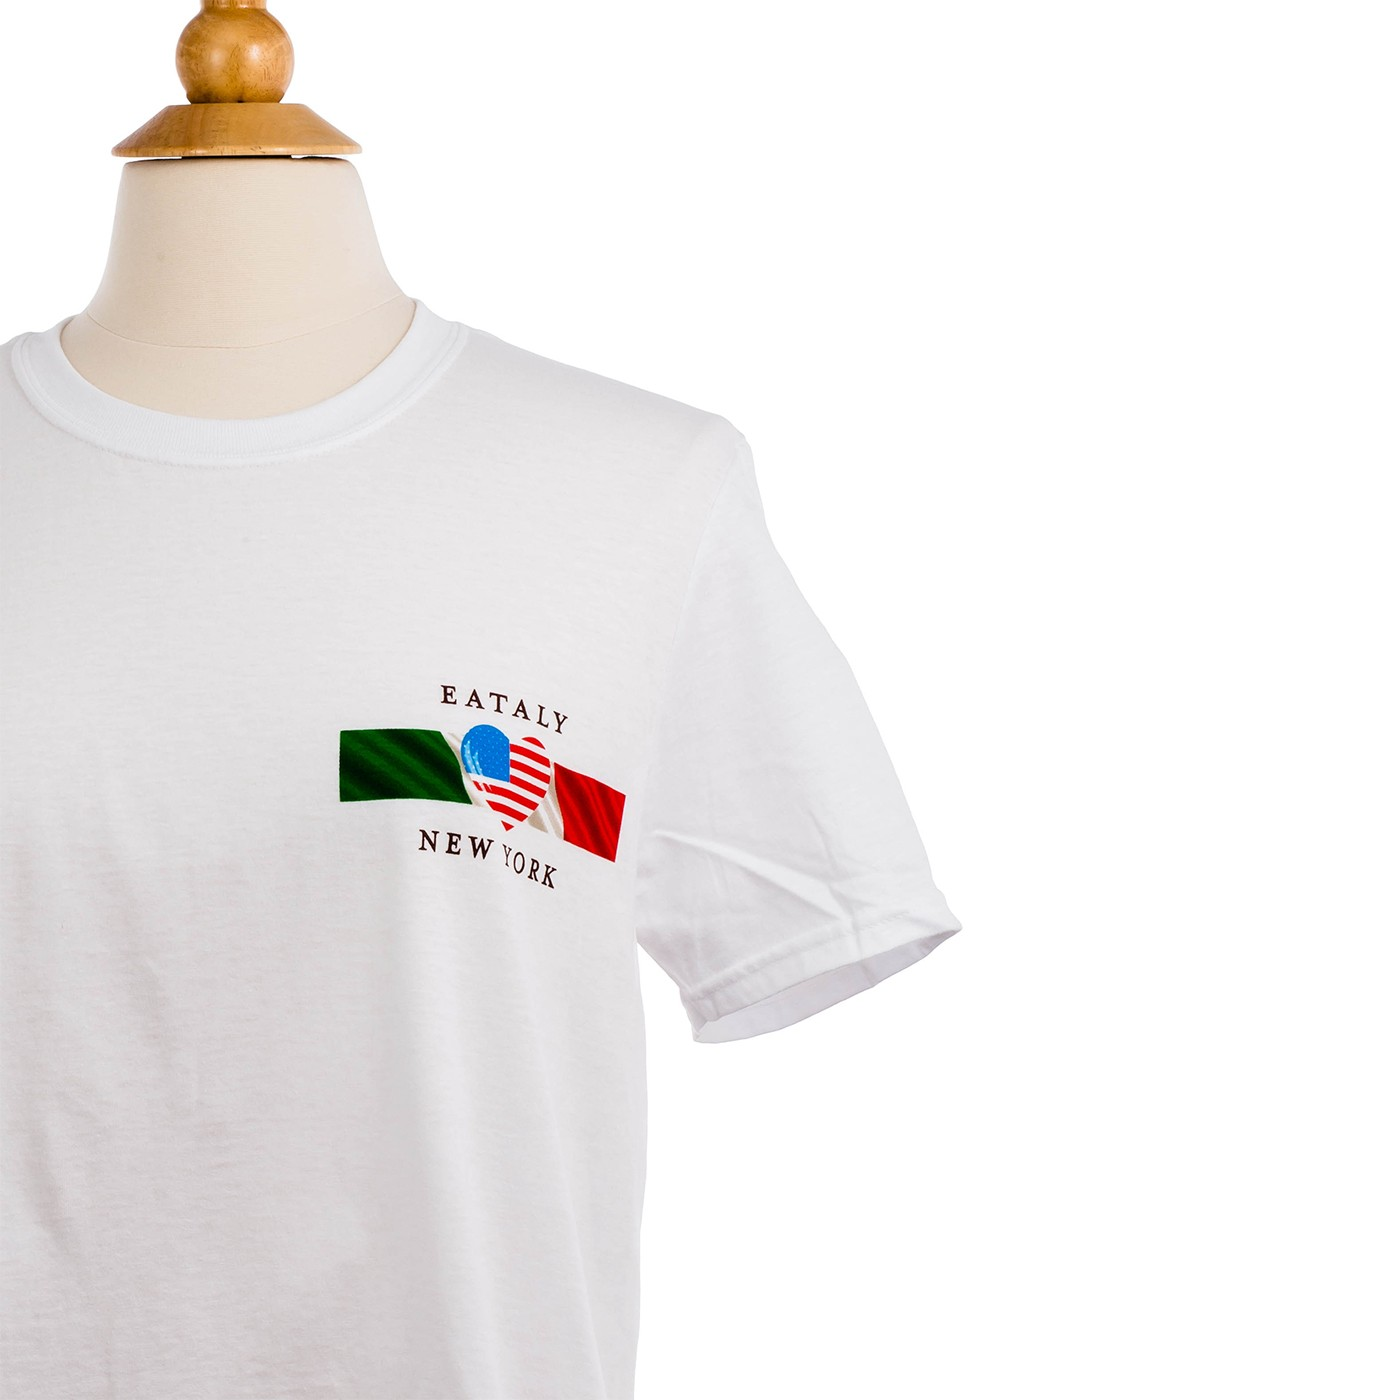 Italy is Eataly T-shirt - Small